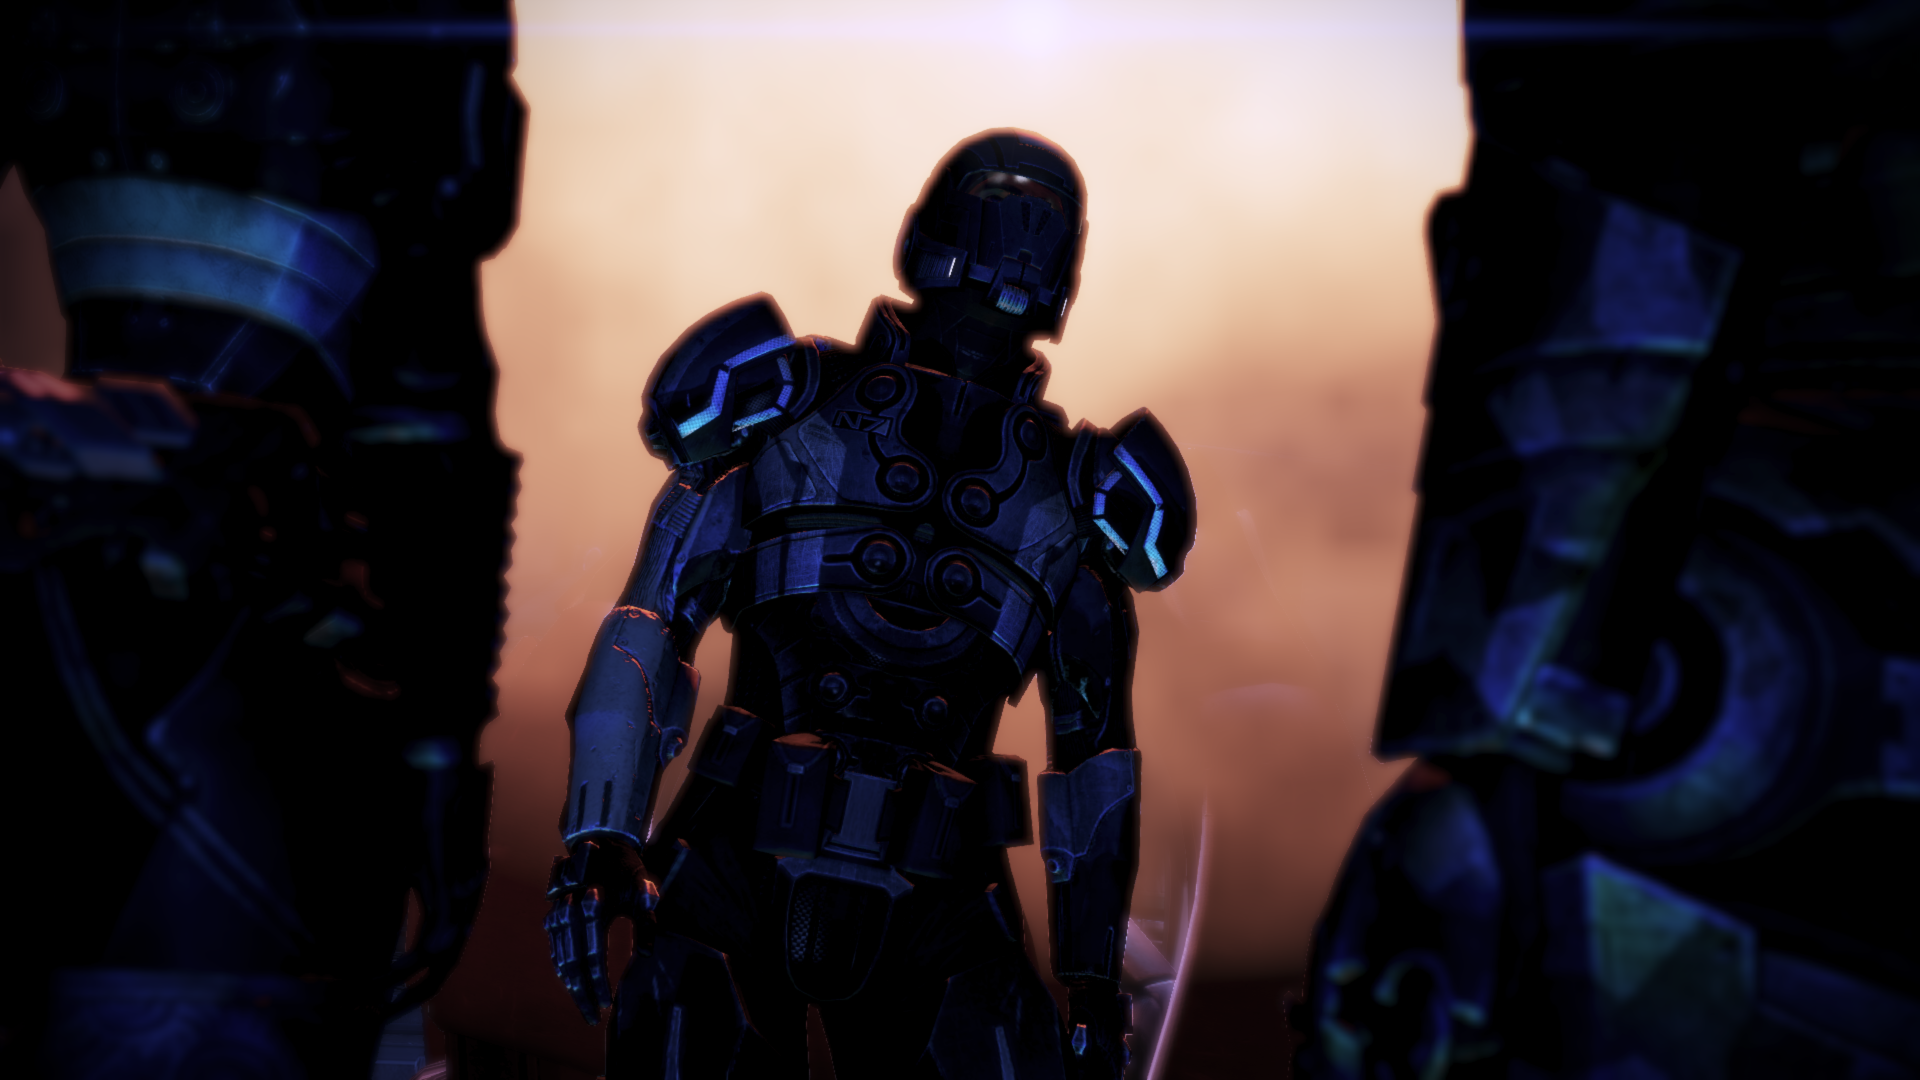 masseffect32012-03-11egugn.png